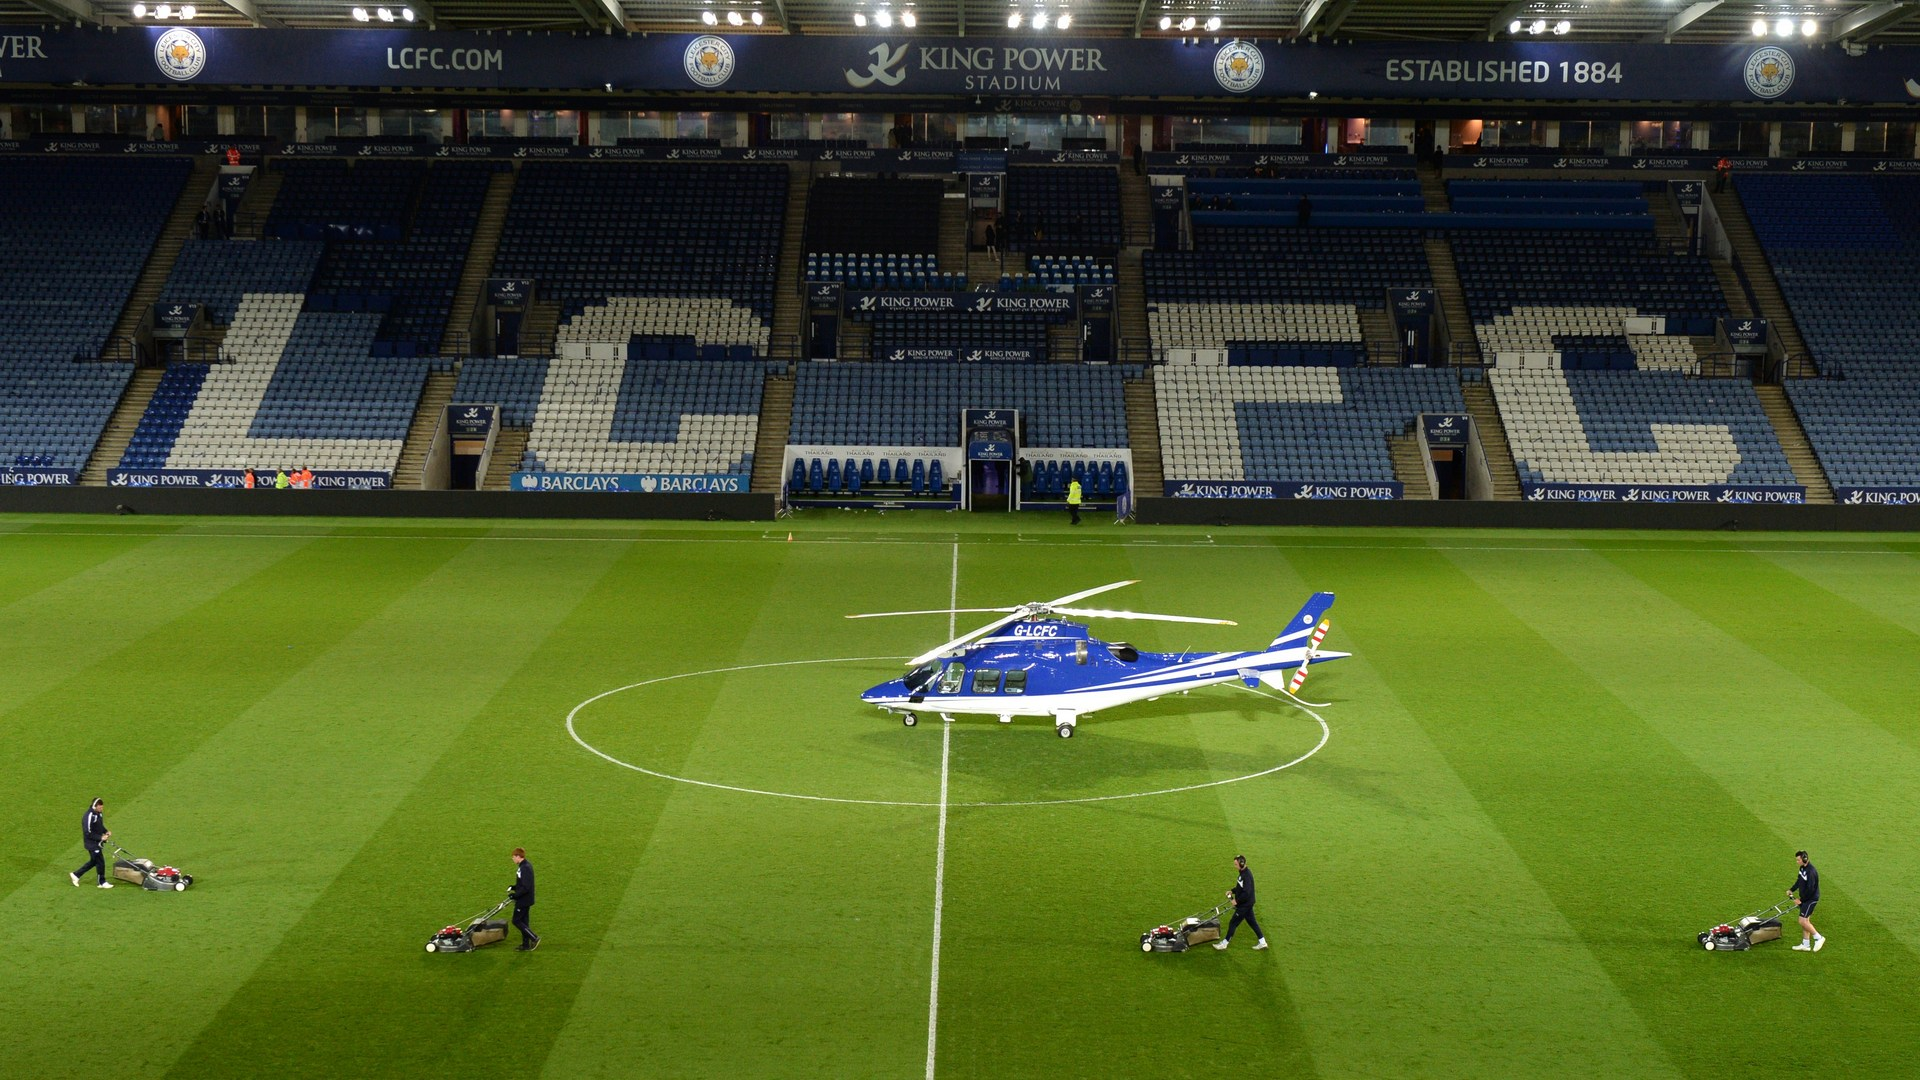 Leicester chairman's helicopter crashes near stadium after West Ham game